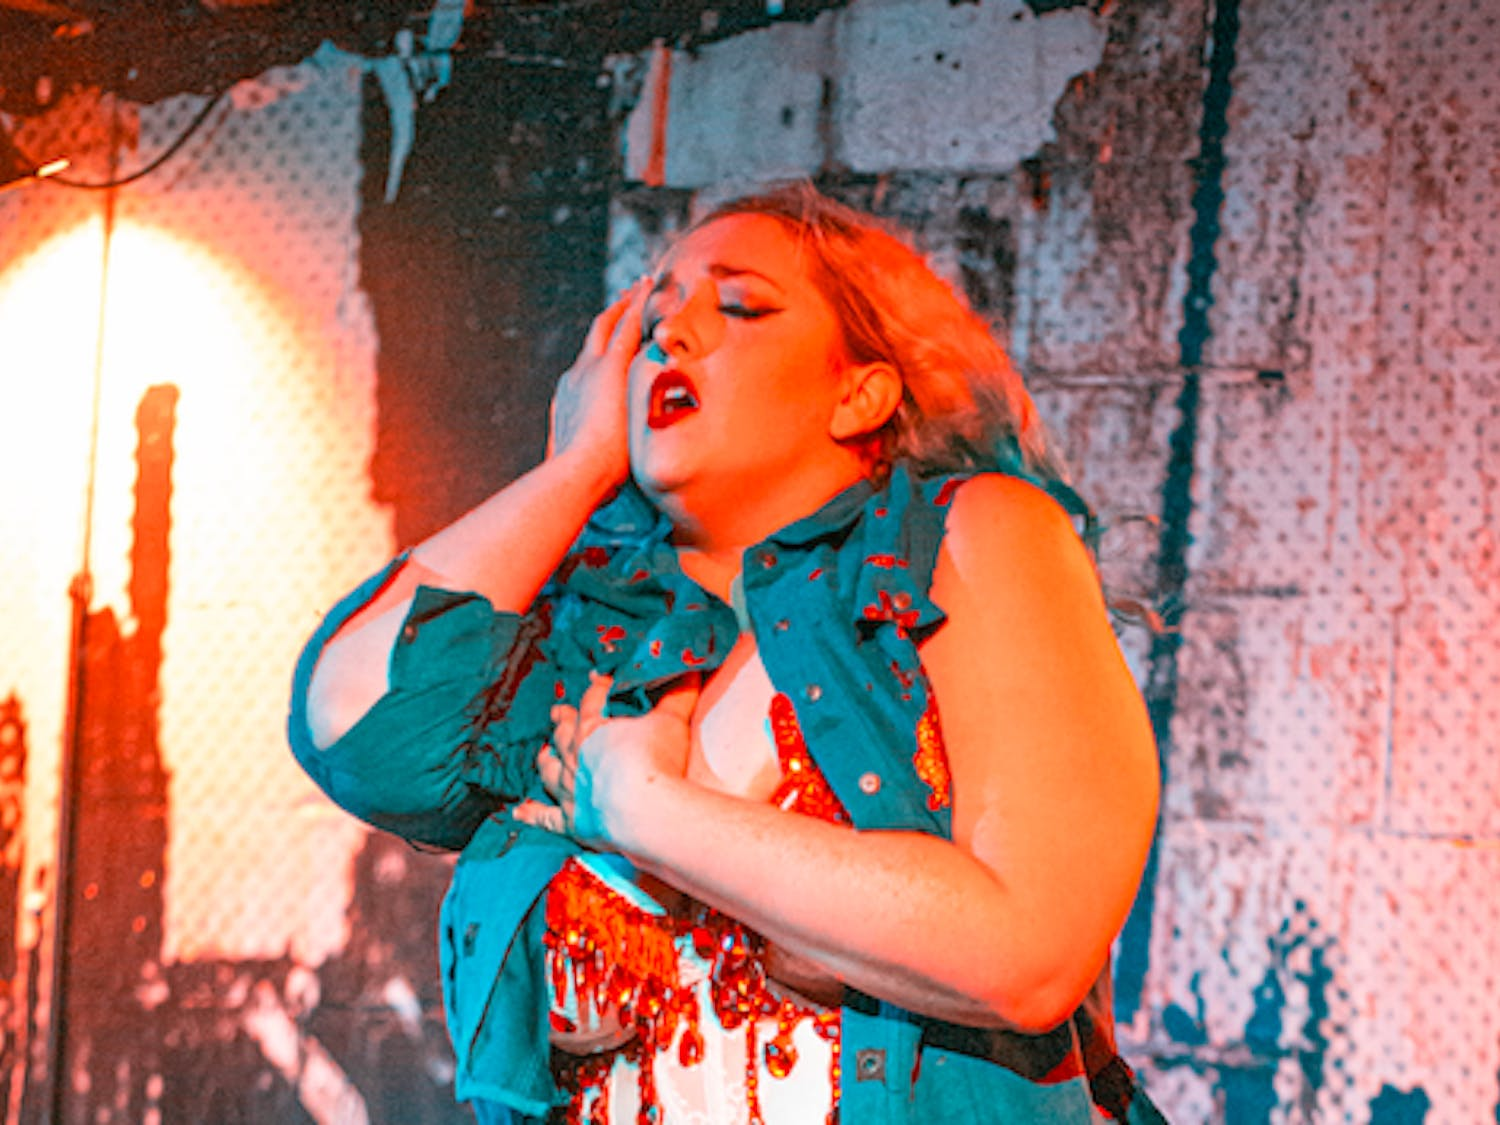 Edith Meowt, a 30-year-old Gainesville resident, will be a video producer and a burlesque dancer for thehorror-inspired burlesque and drag show at Hardback Cafe.